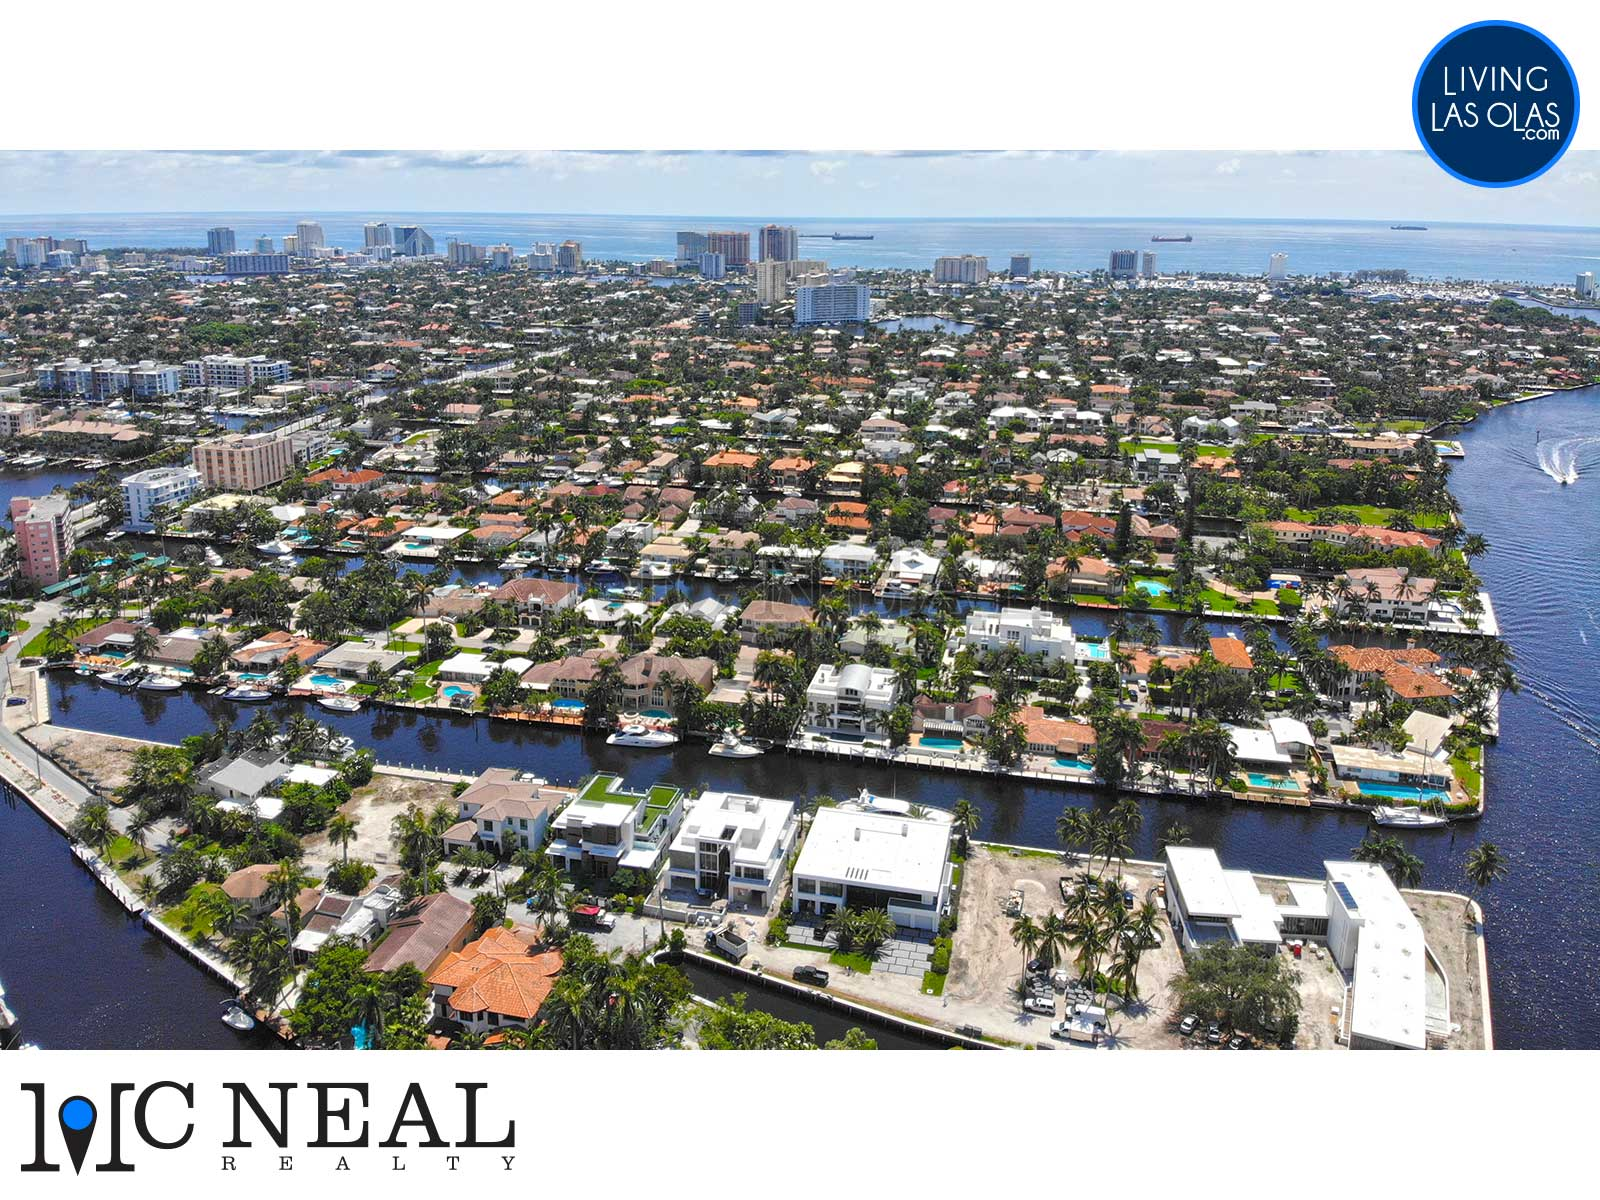 Las Olas Isles Homes Real Estate 04